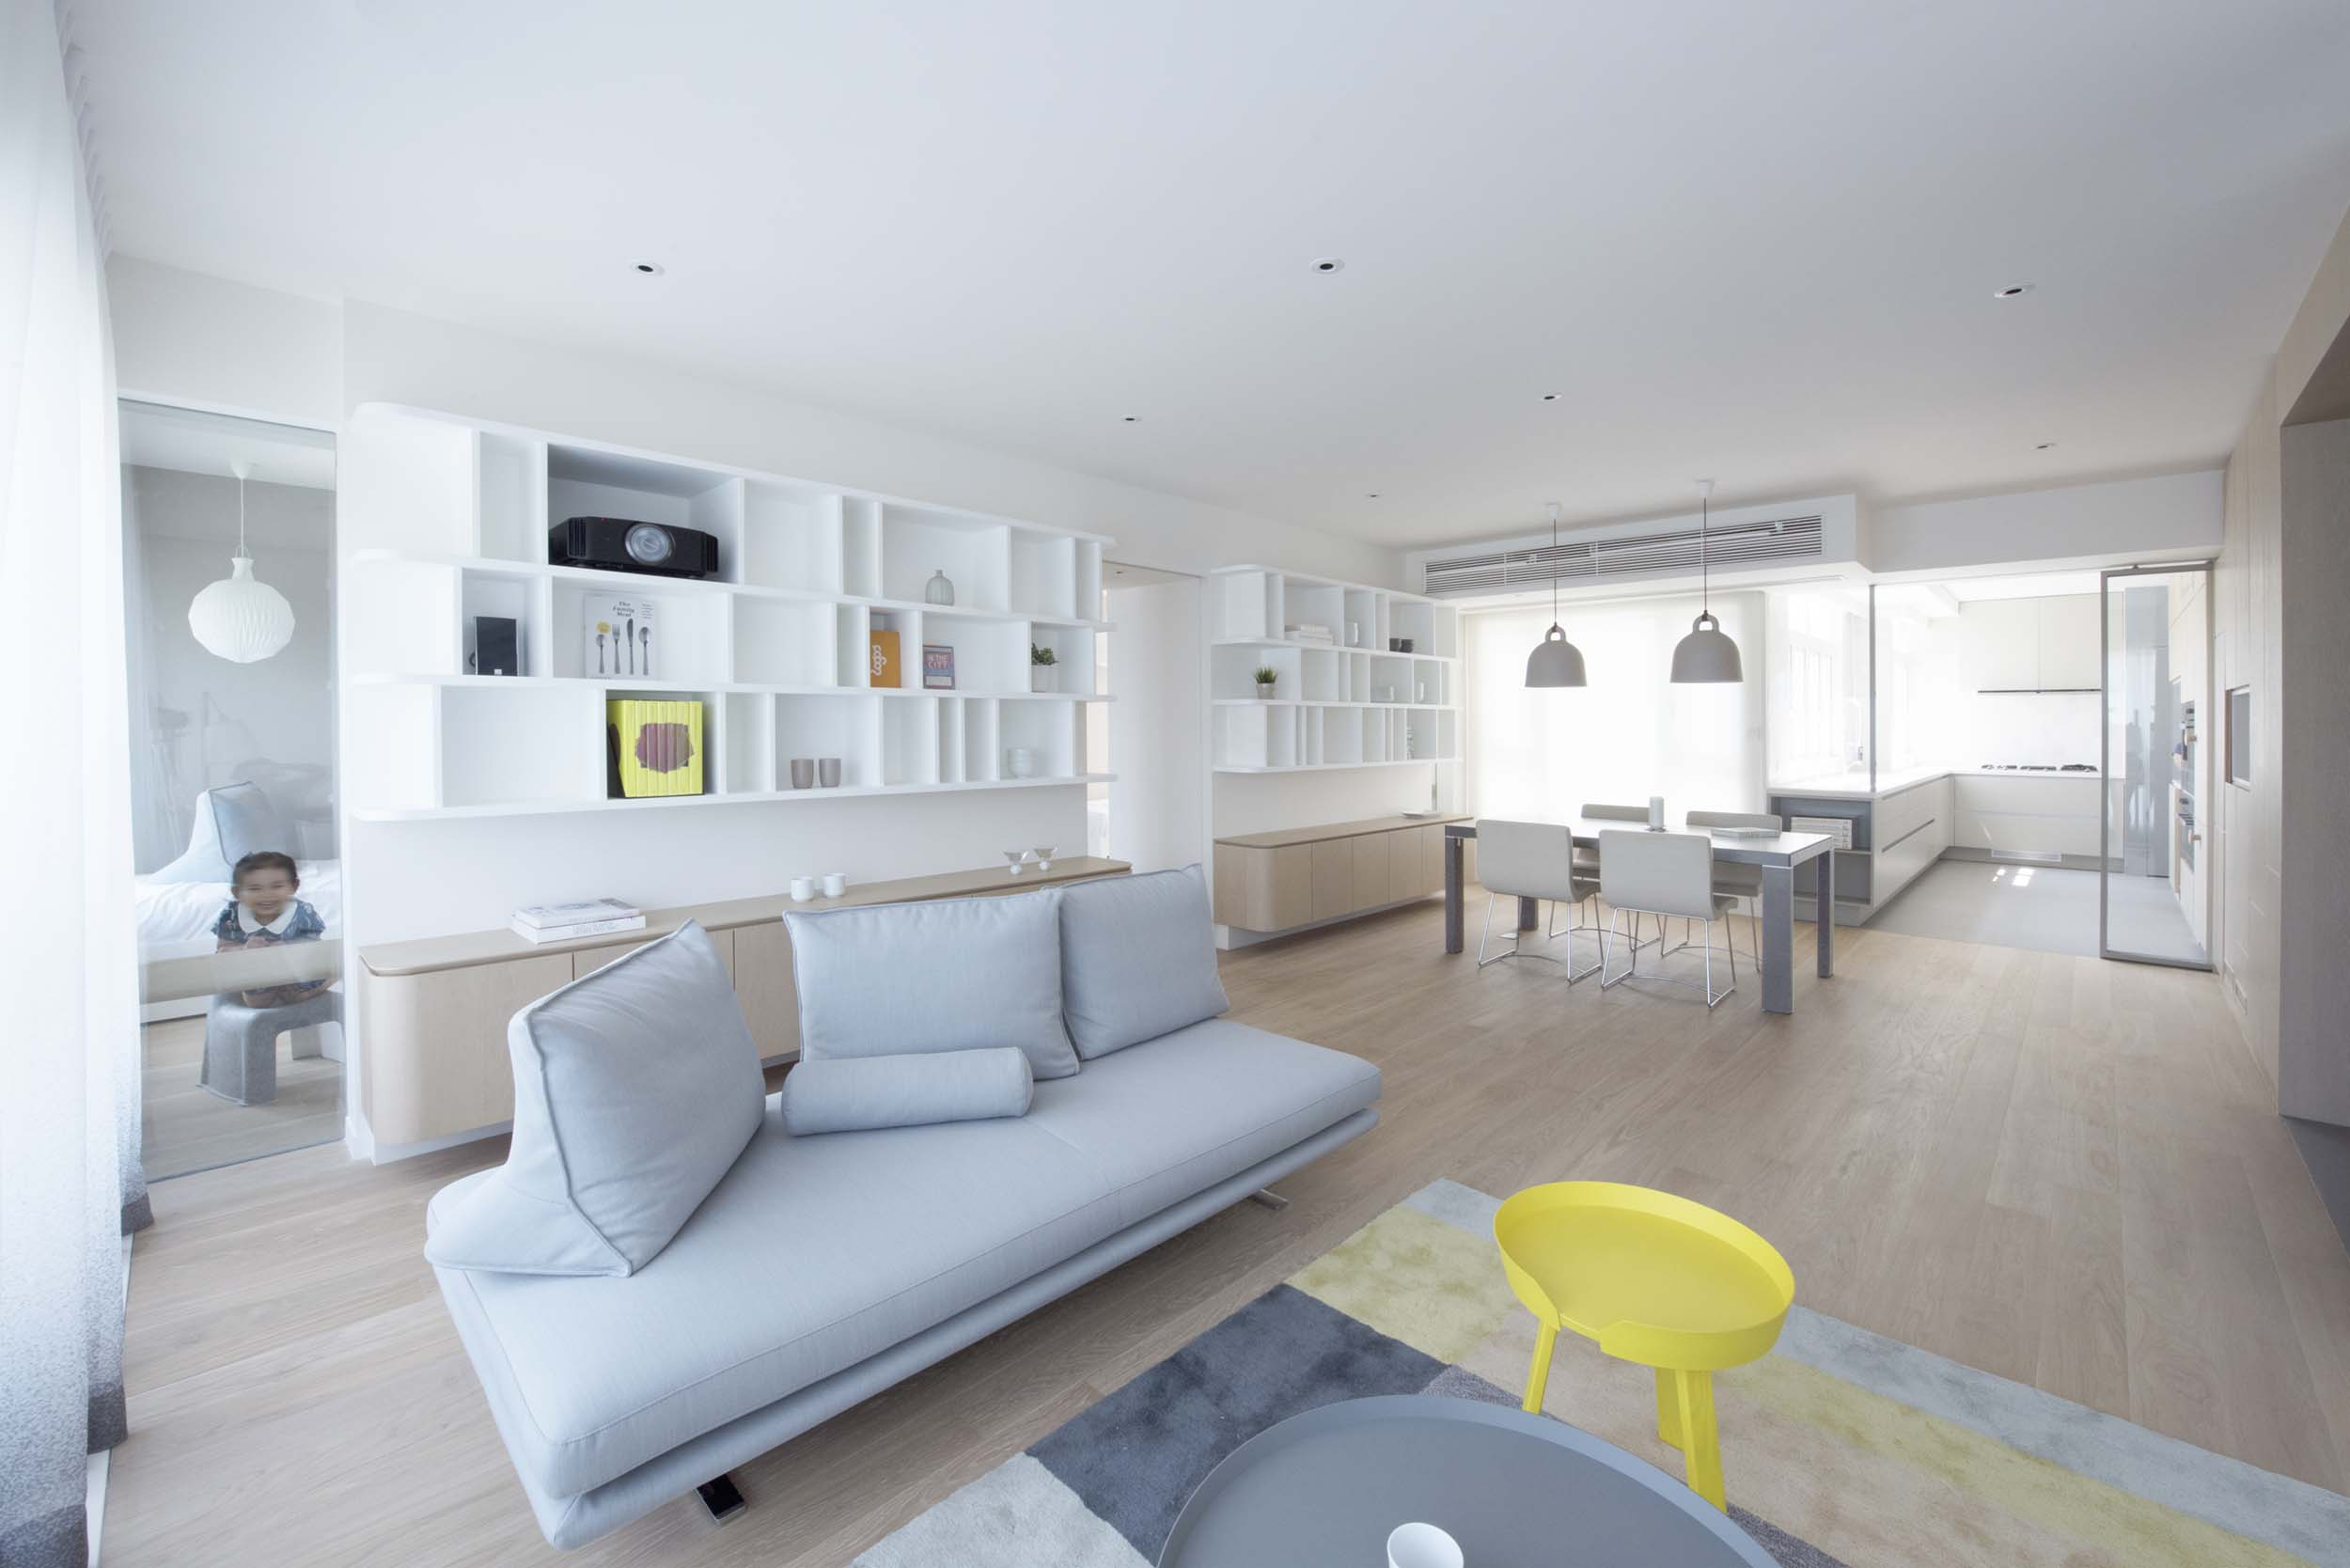 A long slithering wooden wall connects living spaces and kitchen together, while providing plenty of concealed storages, appliances and display niches. The resulting spaces are open, airy and light – with a large feature bookshelf that appears to be floating. Daylight and ocean views are extended by strategically positioned mirrors and glass partitions, anchoring the apartment in its beautiful surroundings.